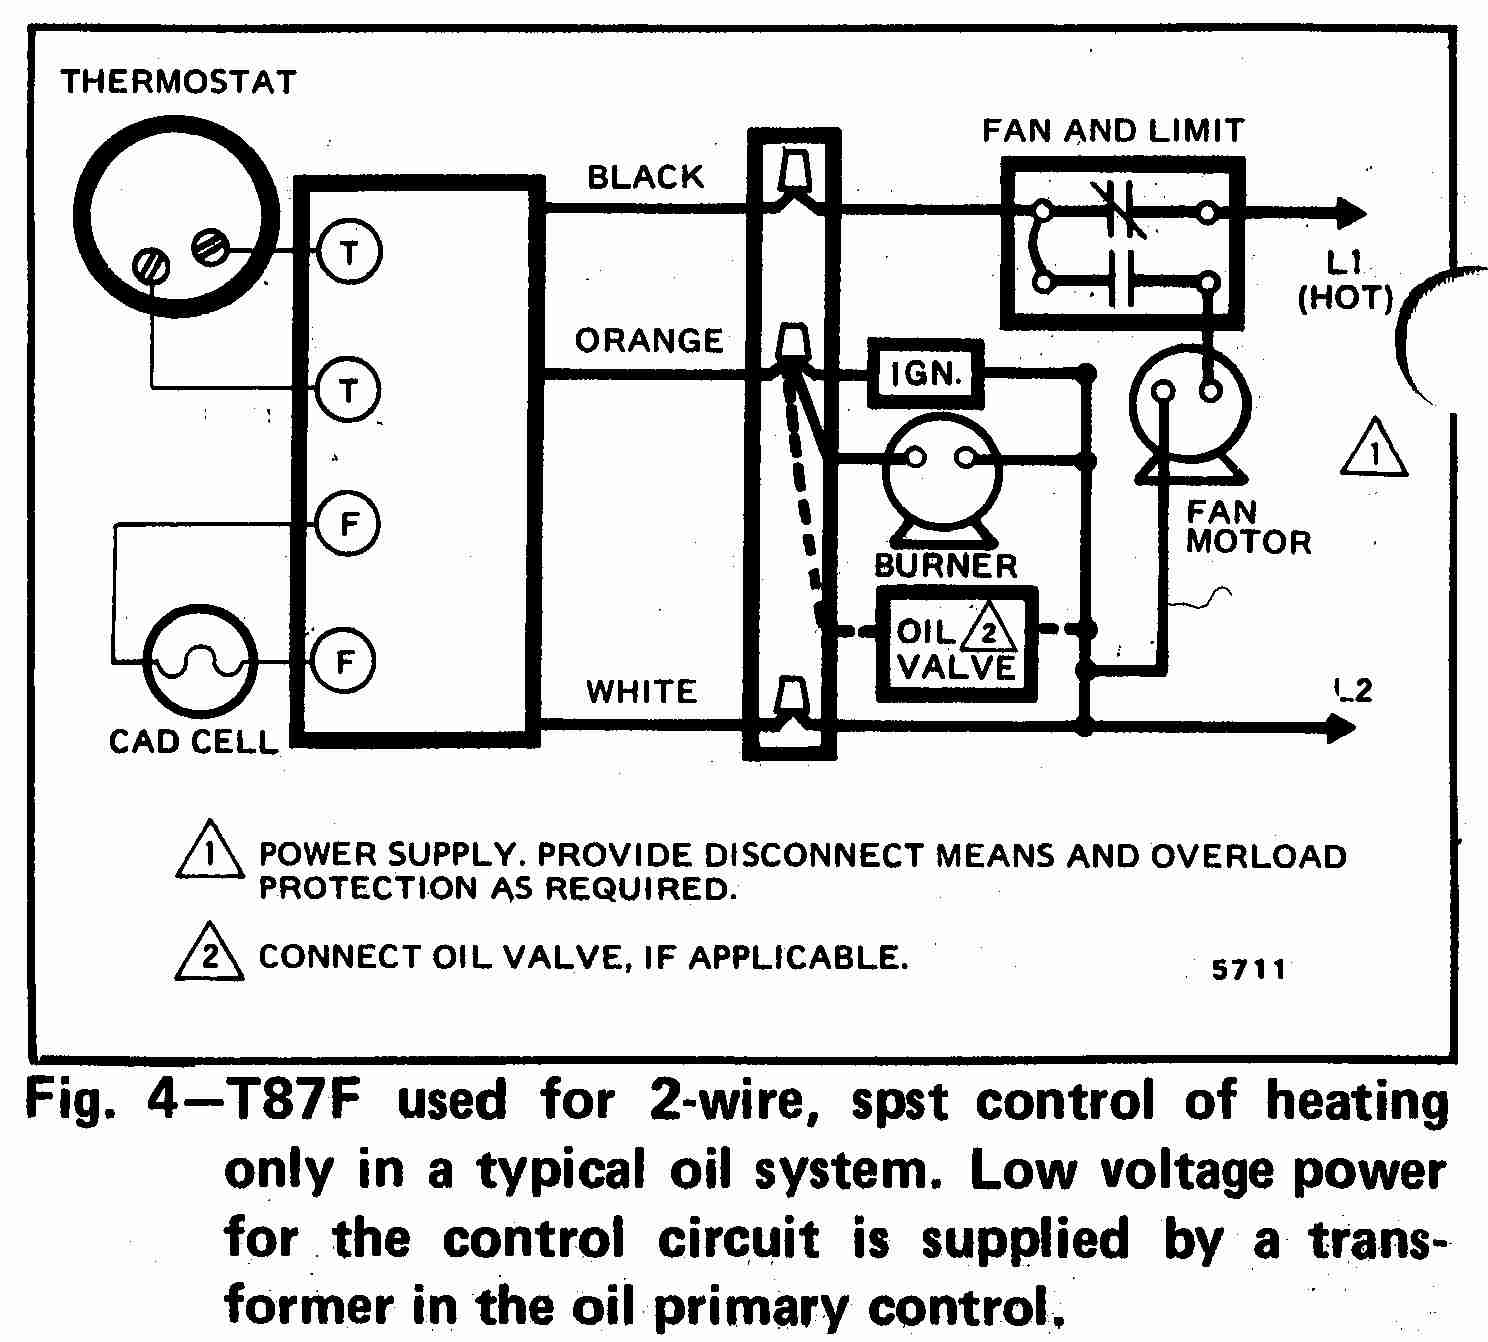 room thermostat wiring diagrams for hvac systems hvac plumbing diagrams  honeywell t87f thermostat wiring diagram for